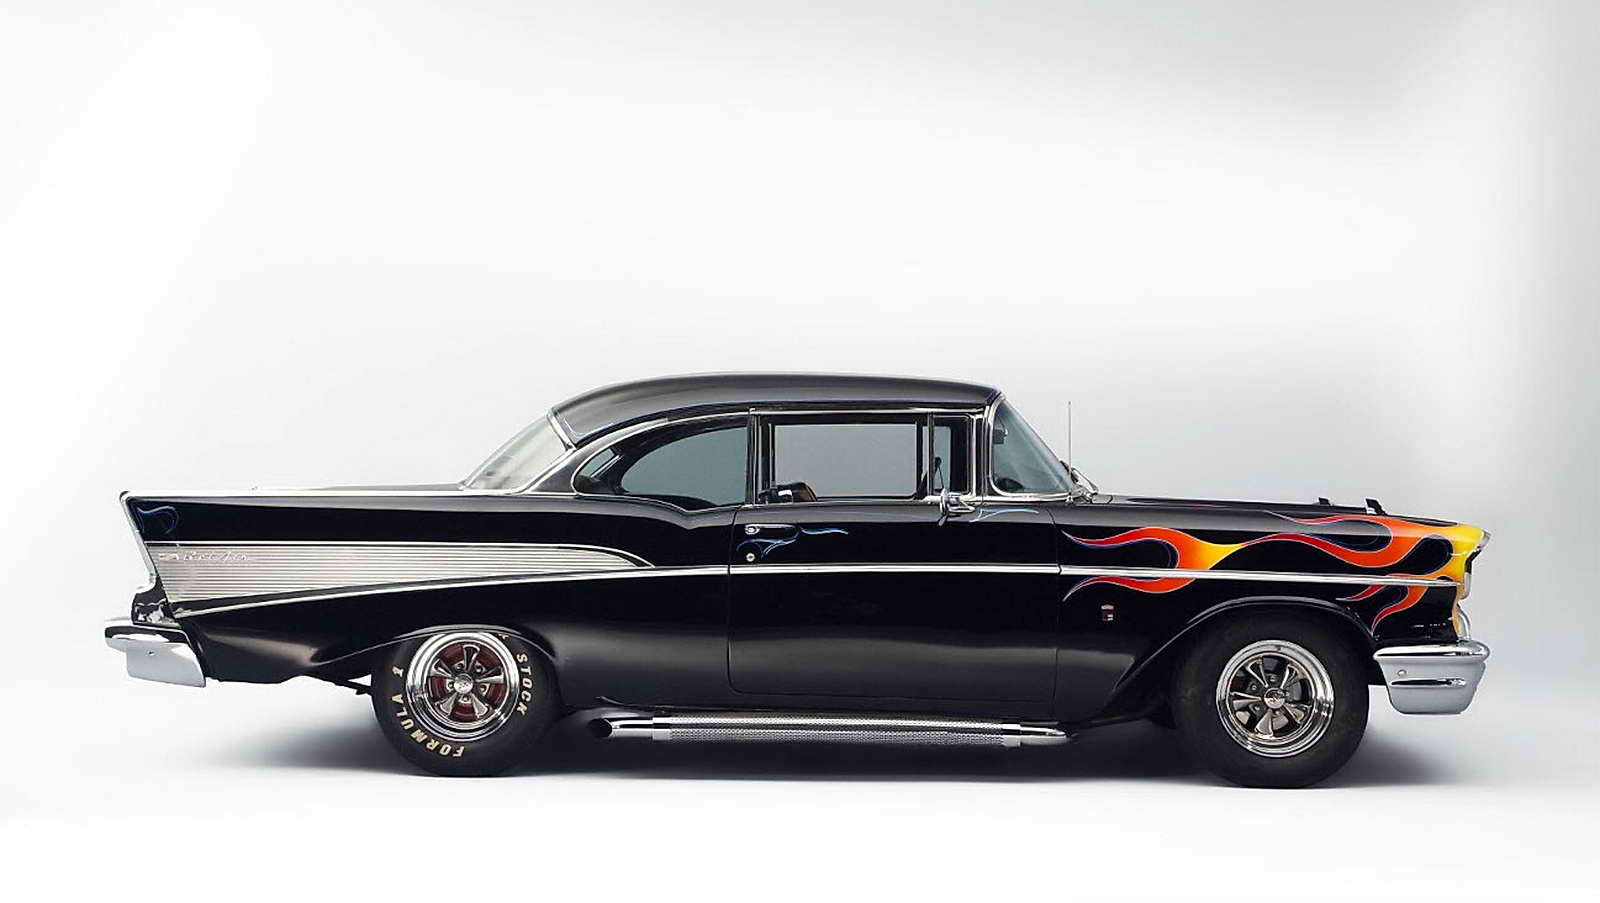 Chevrolet_Bel_Air_Hard_Top_Coupe_Ringo_Starr_02